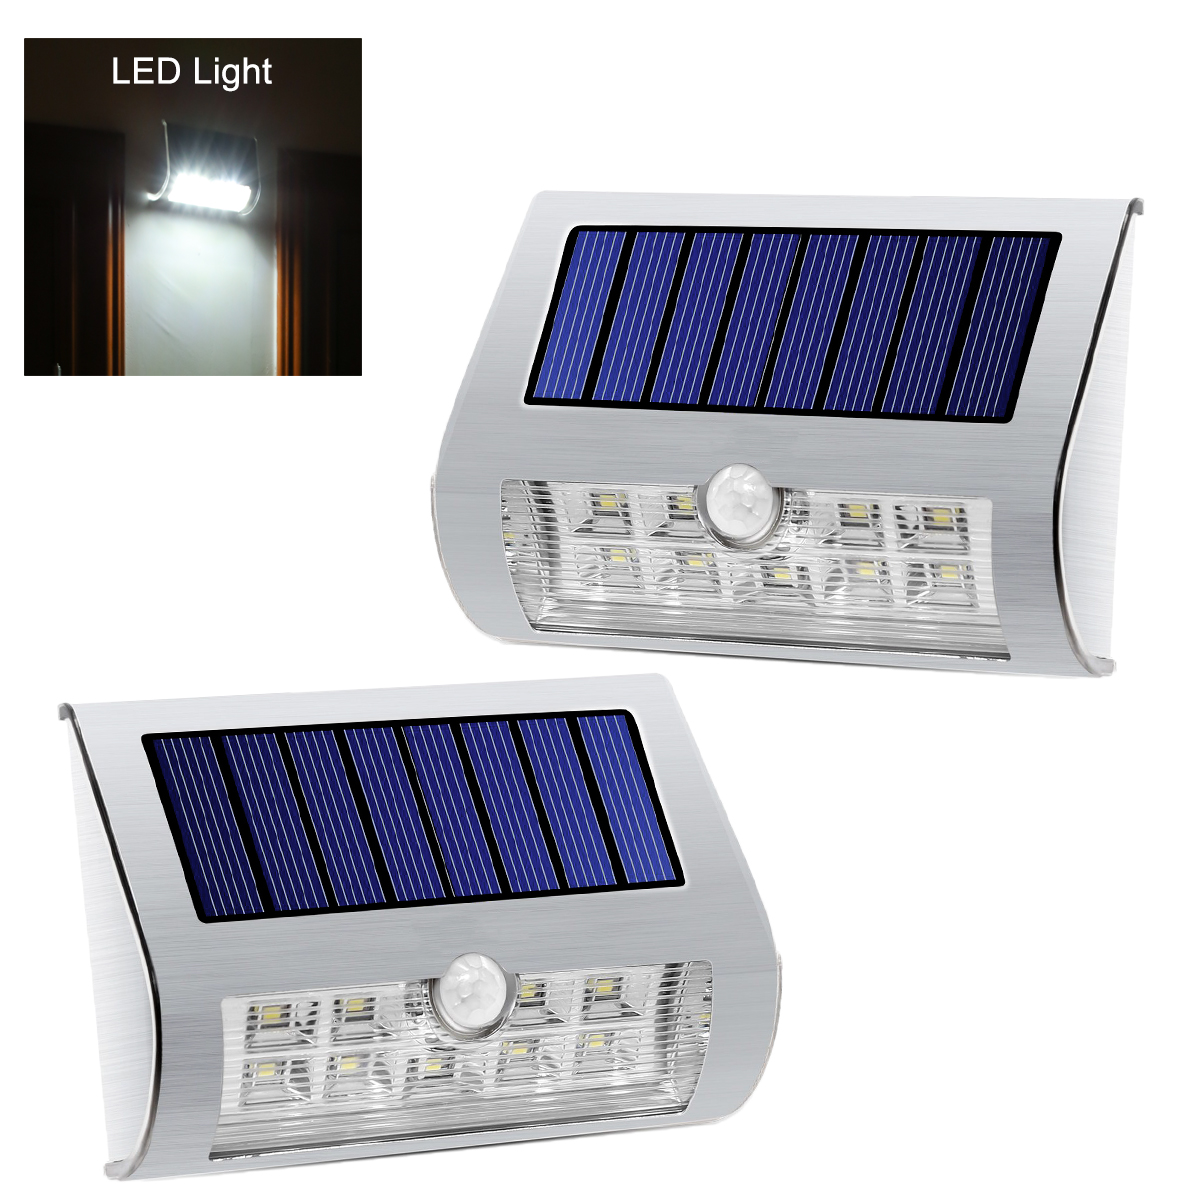 Pir outdoor solar led lights pair stainless steel ip44 imagesbuy wholesale electronicssolar powered outdoor led workwithnaturefo